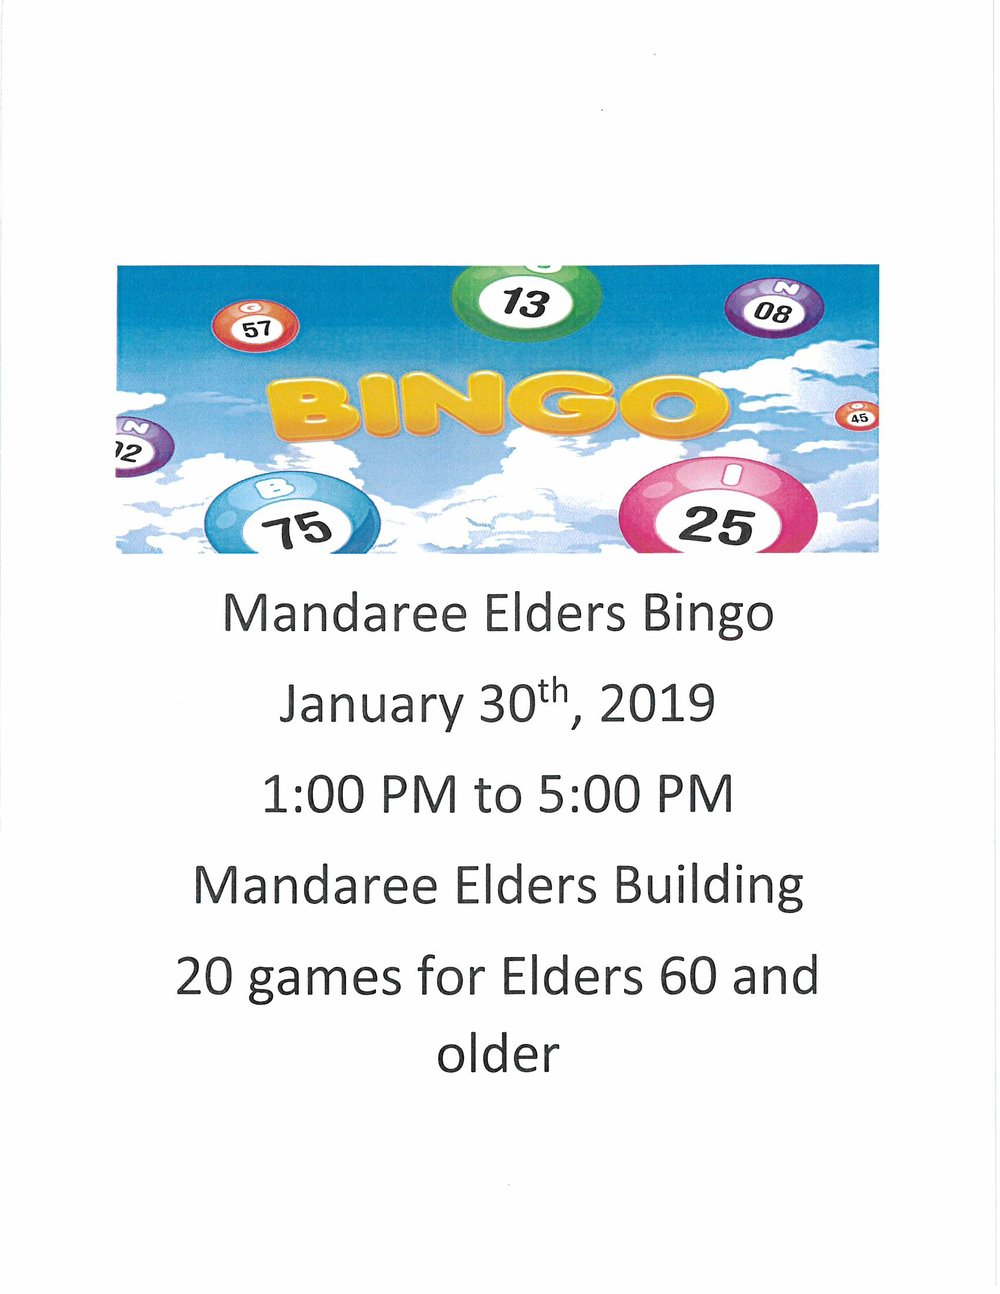 Mandaree Elders Bingo Jan 30 2019.jpg